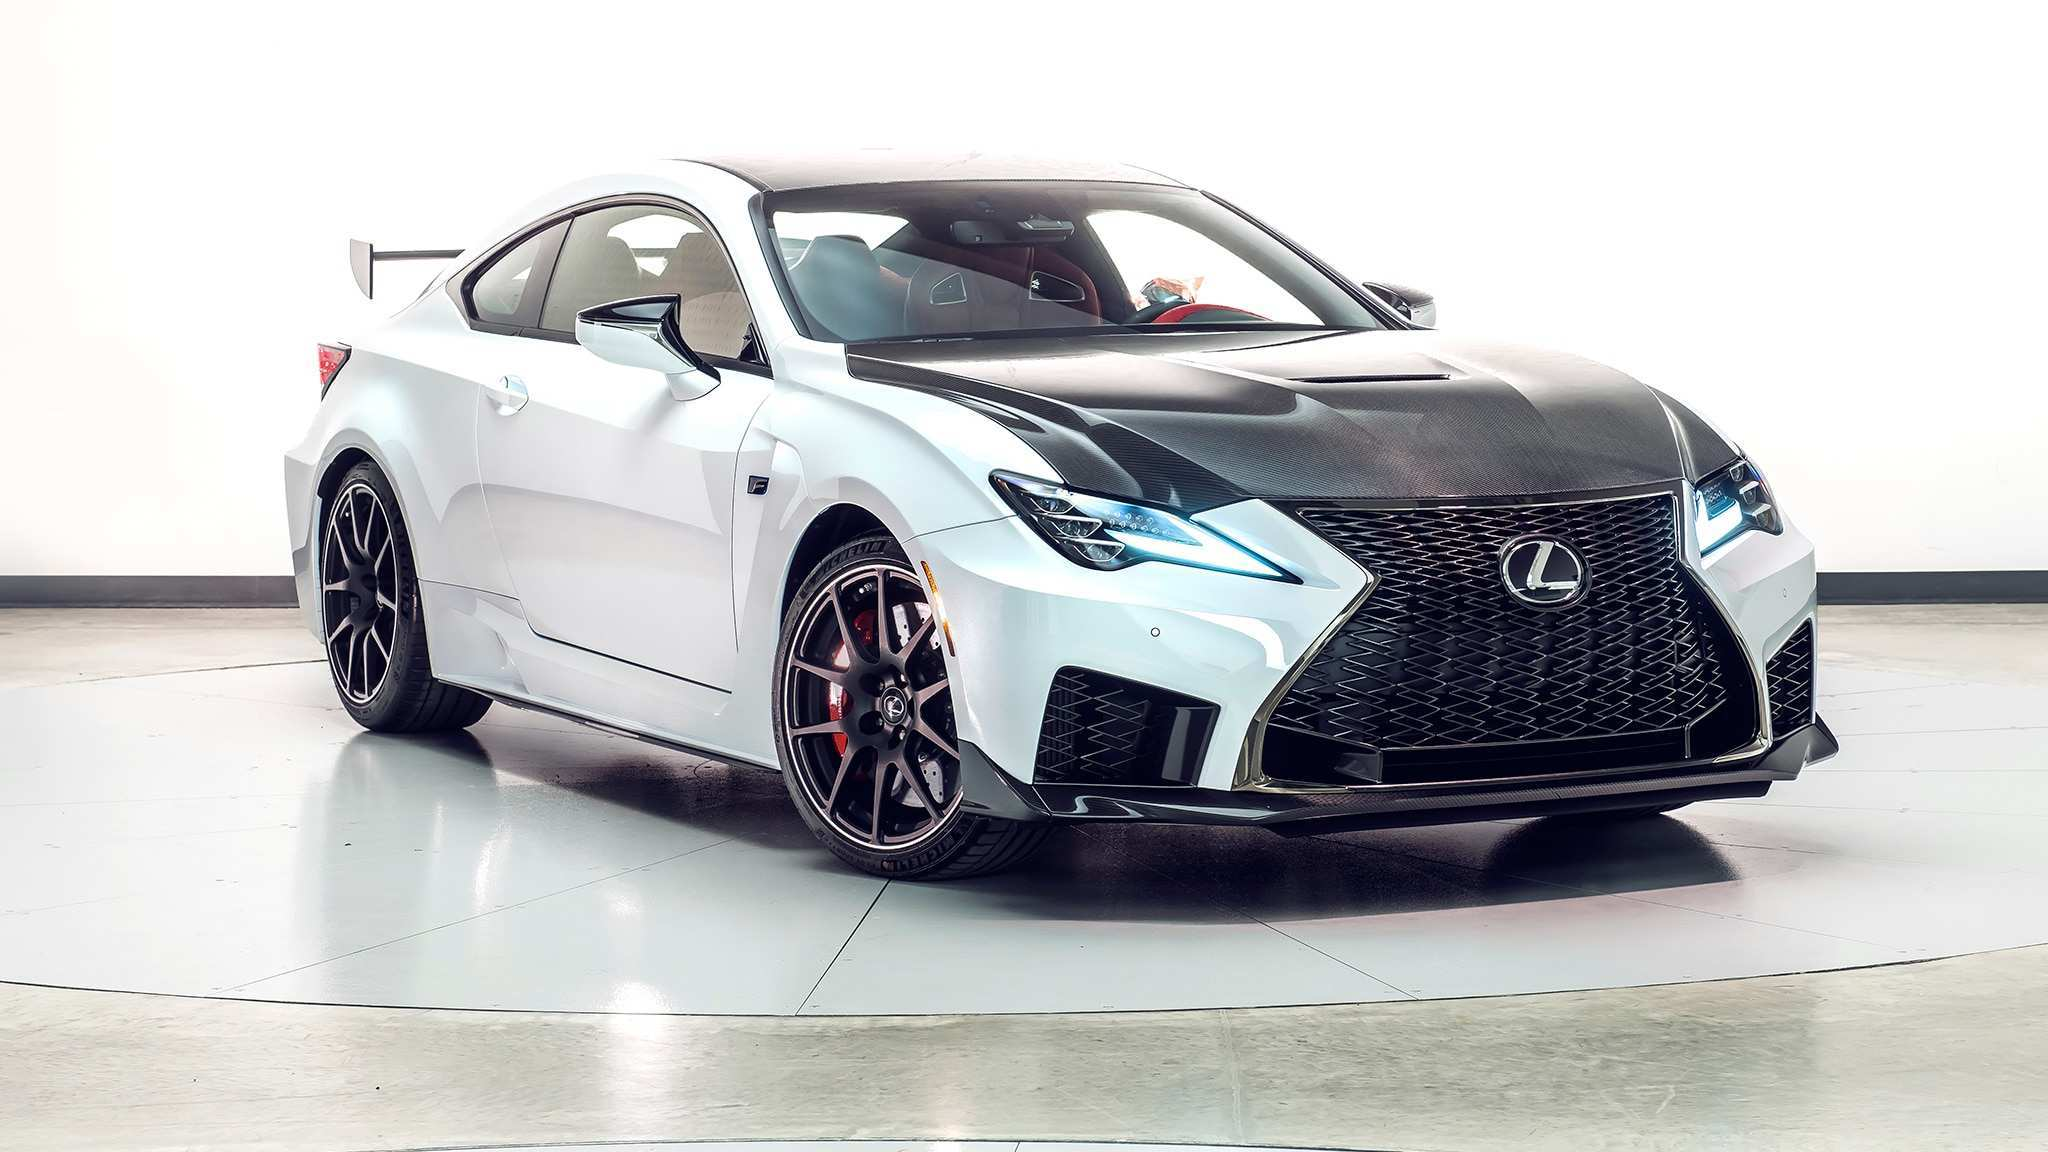 73 New Rcf Lexus 2020 Photos by Rcf Lexus 2020